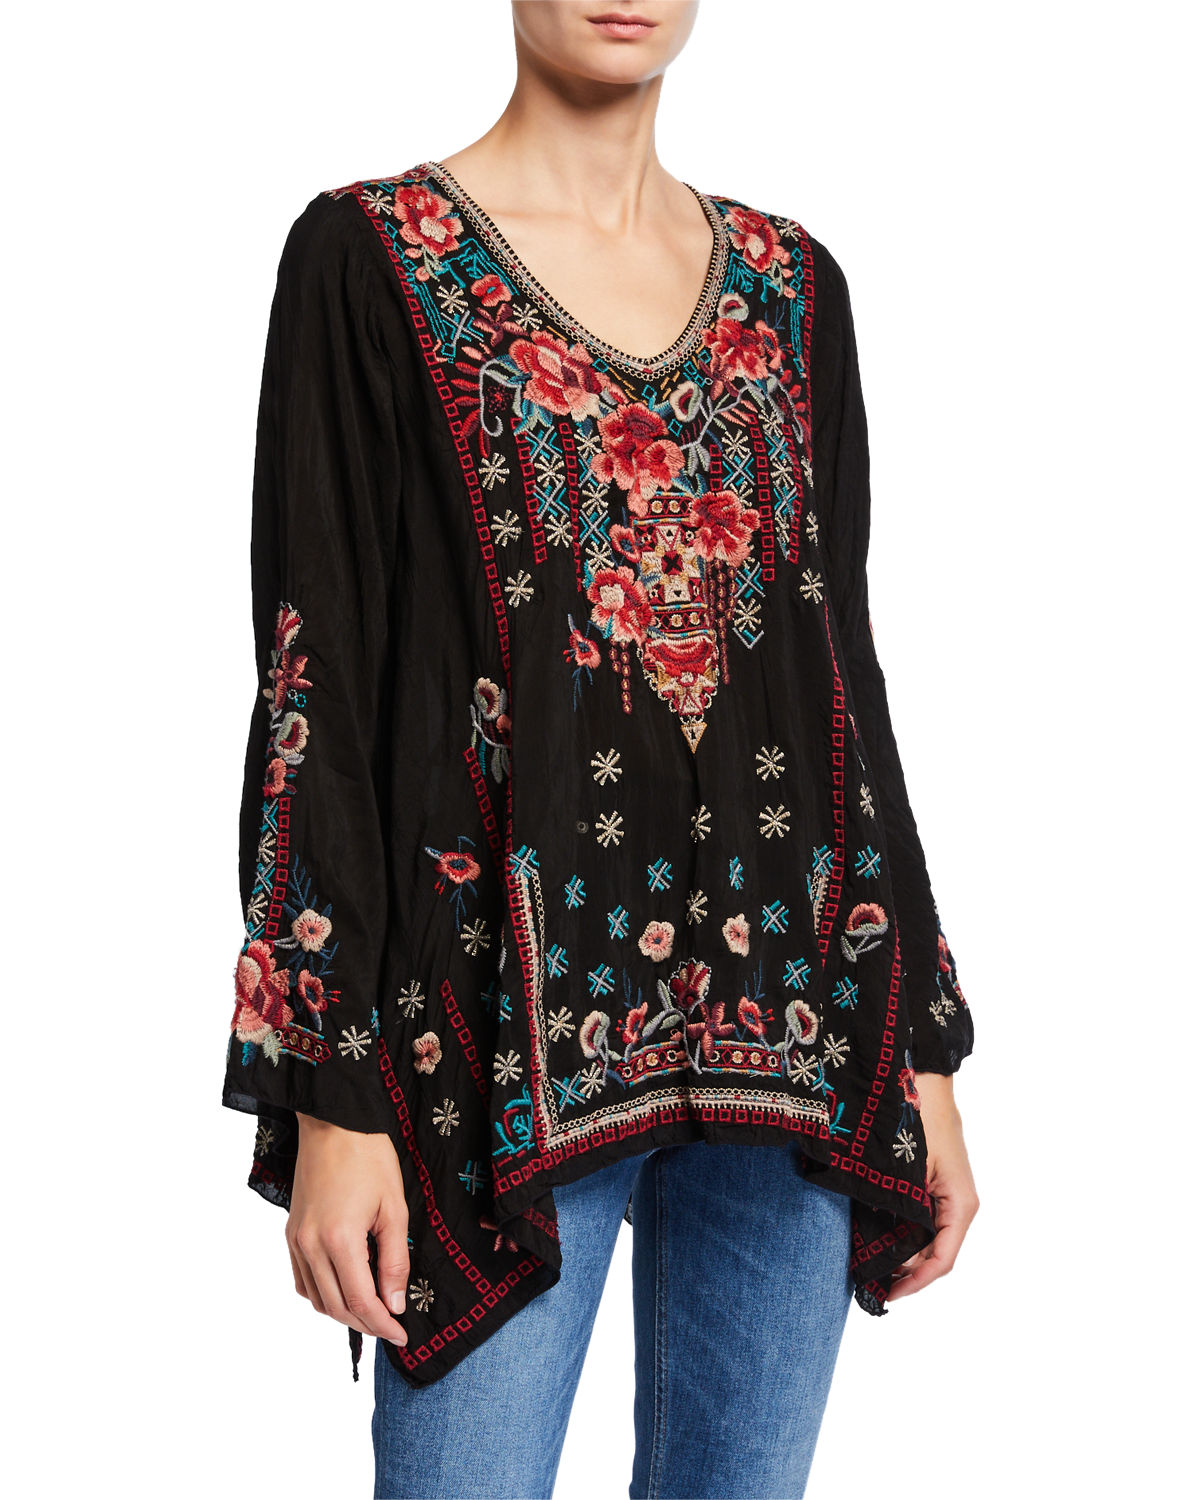 Johnny Was Tops DULCI V-NECK ASYMMETRIC TUNIC W/ MULTI MEDIA EMBROIDERY